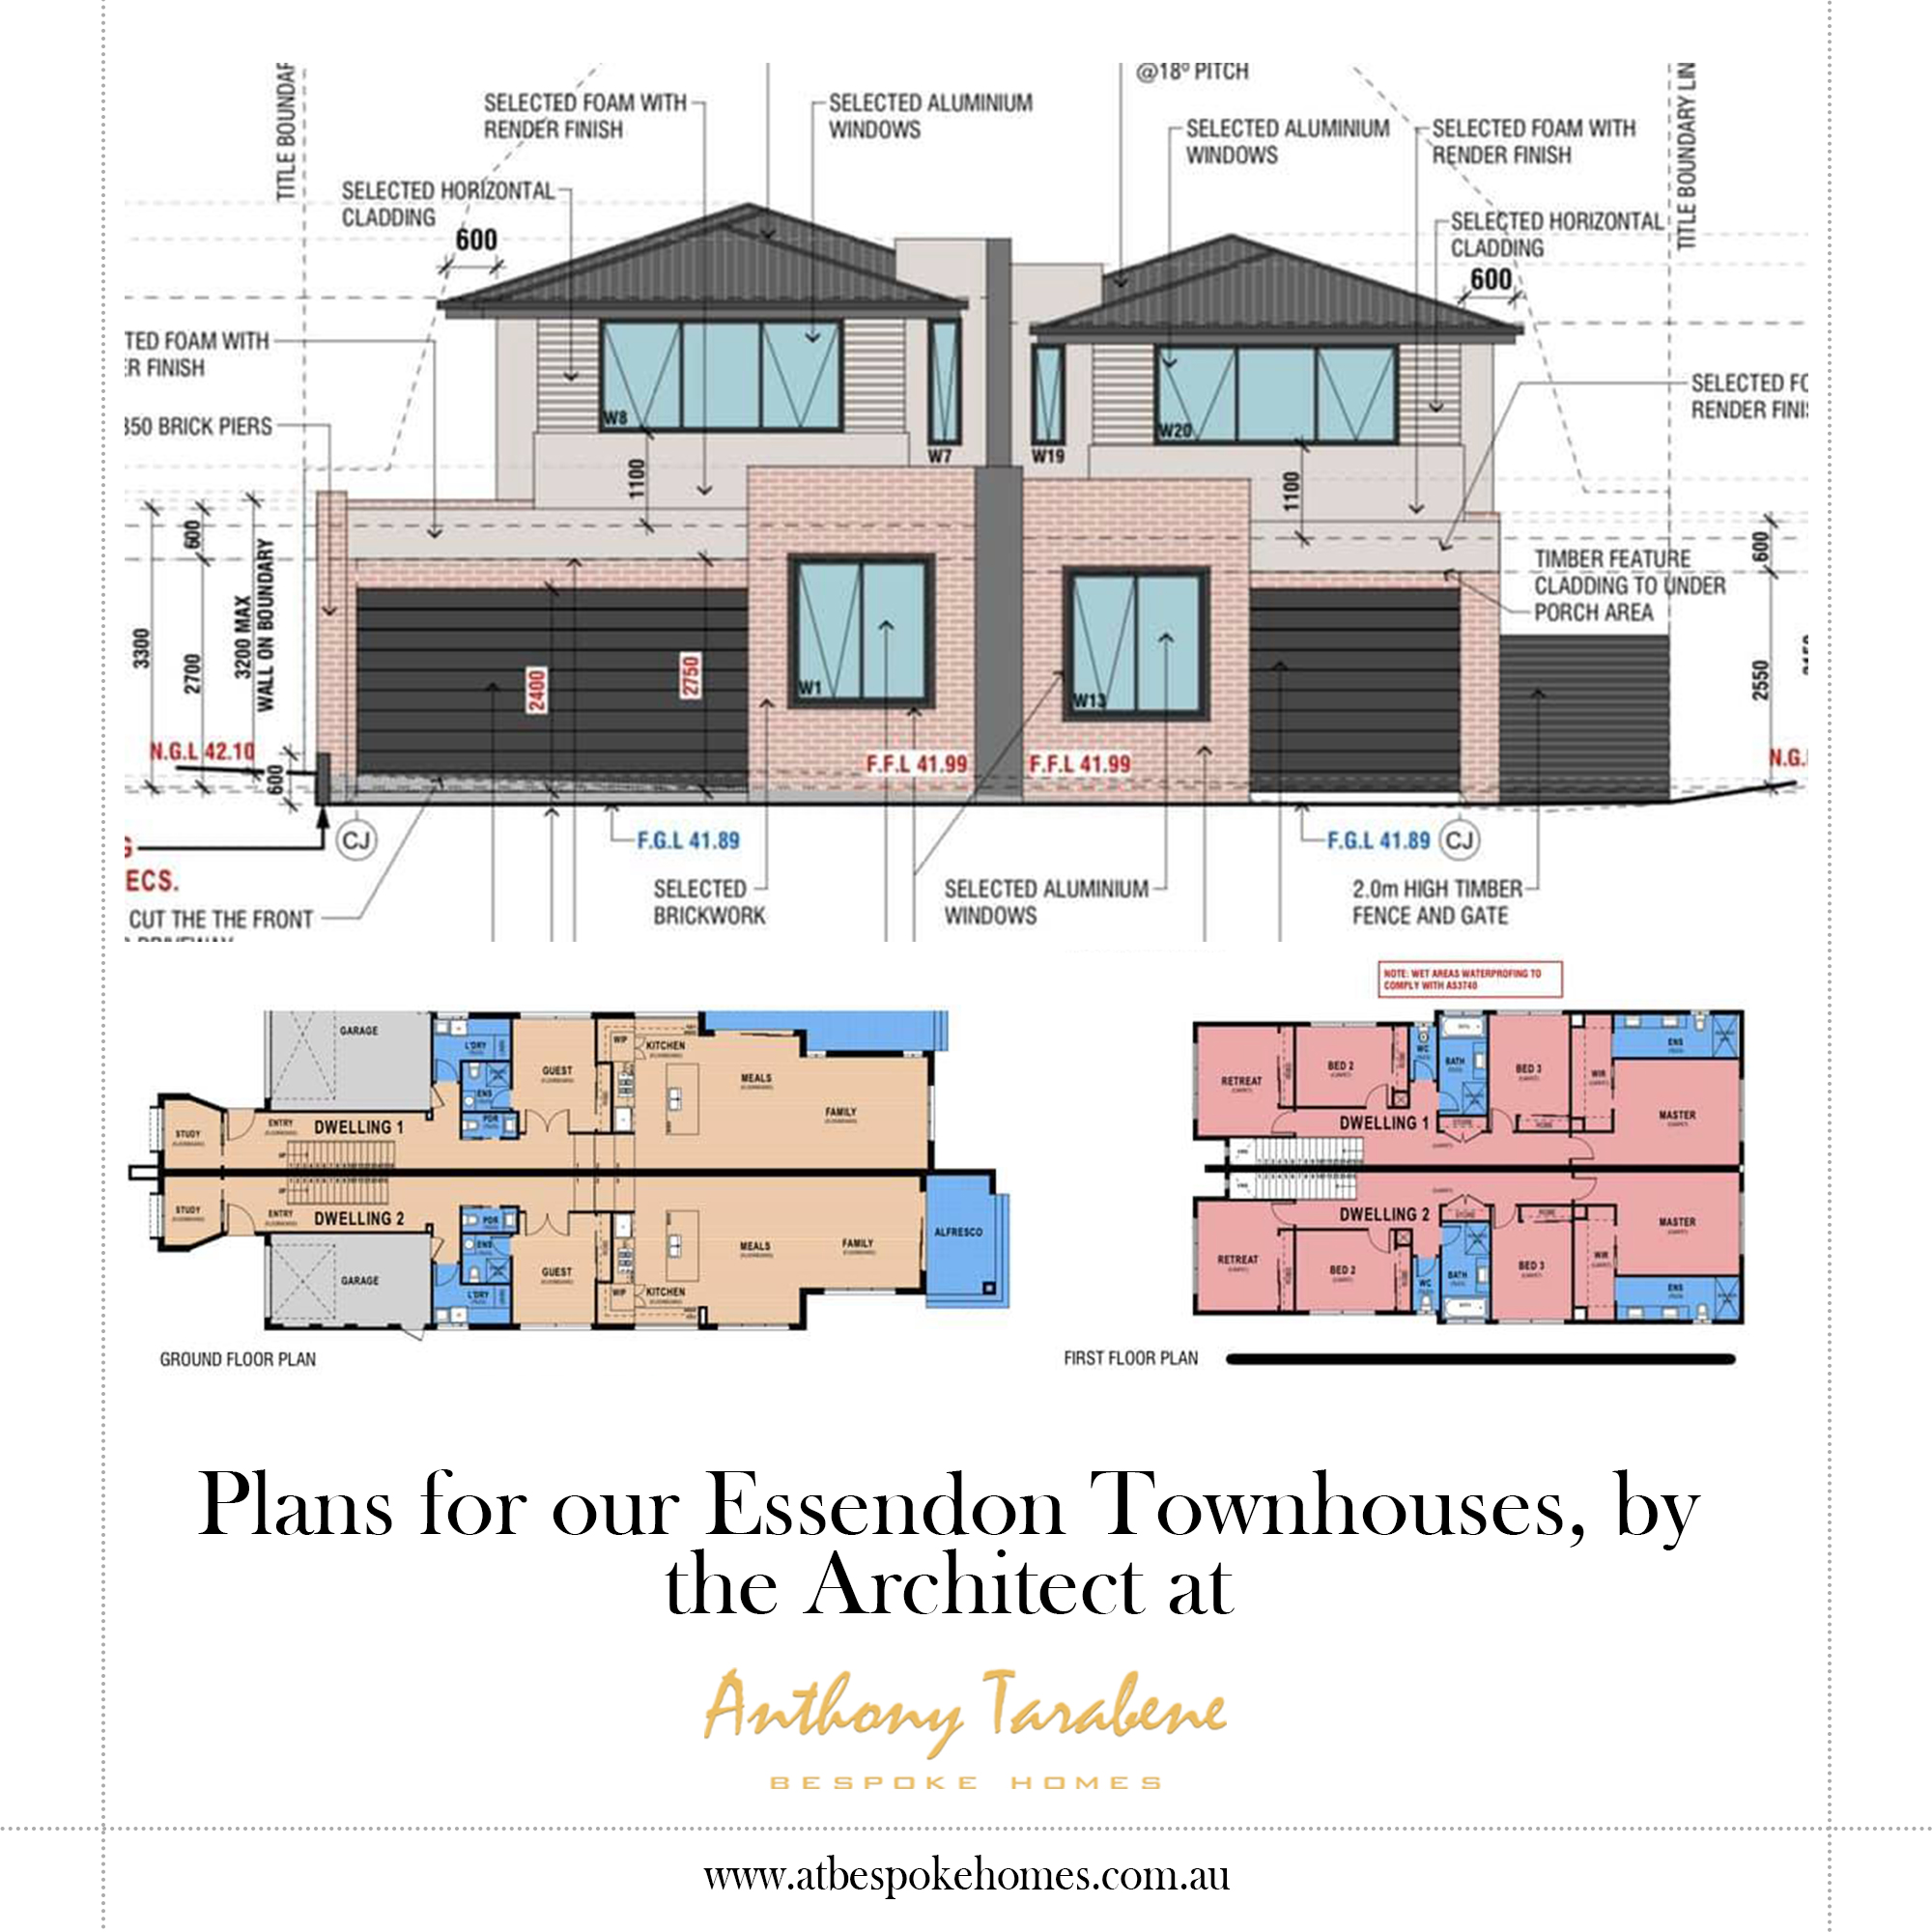 plan for our Essendon townhouse, by the architect at